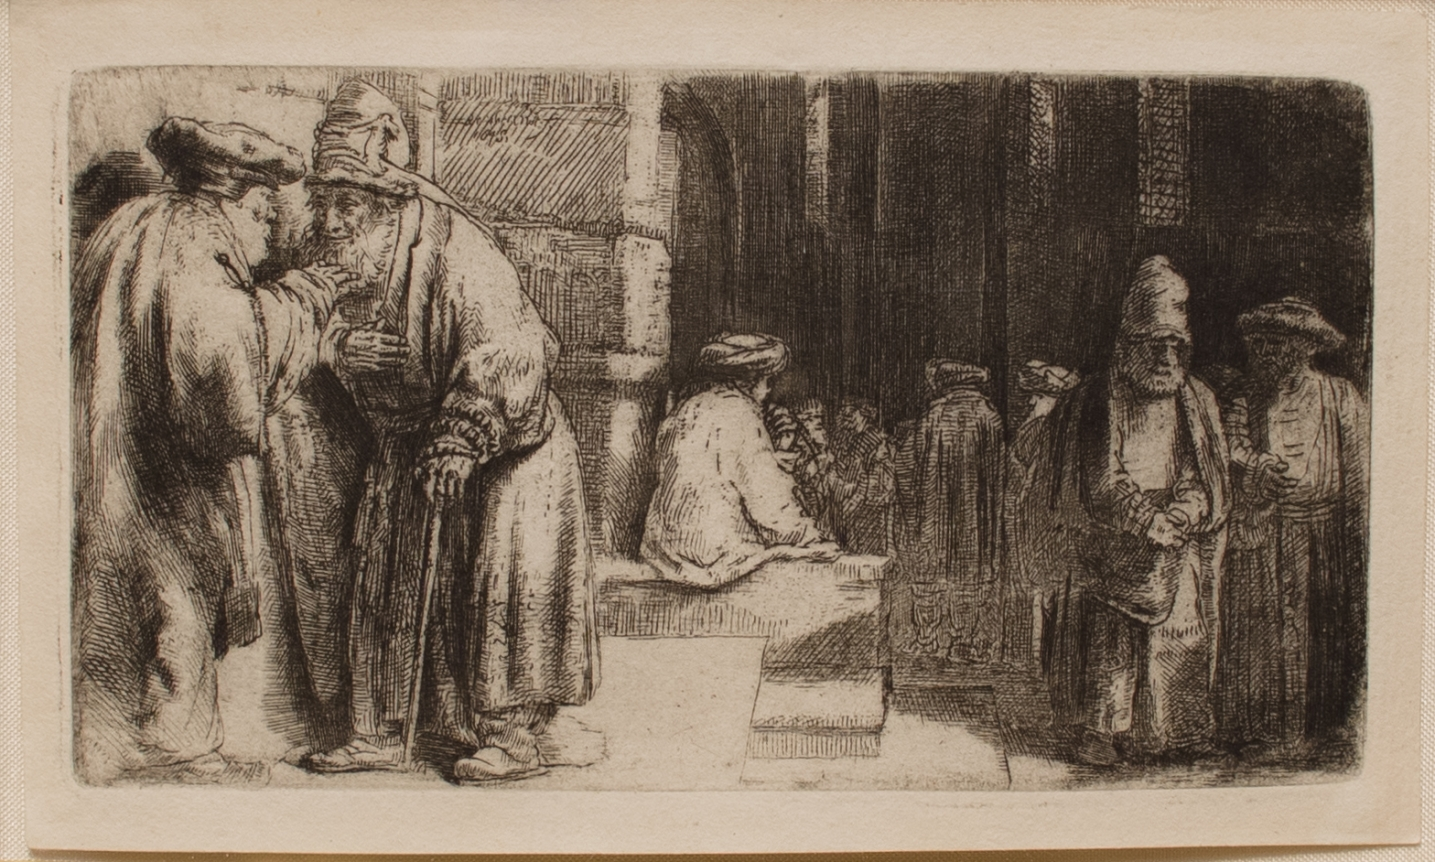 Harmensz van Rijn Rembrandt, Jews in the Synagogue, Etching and drypoint